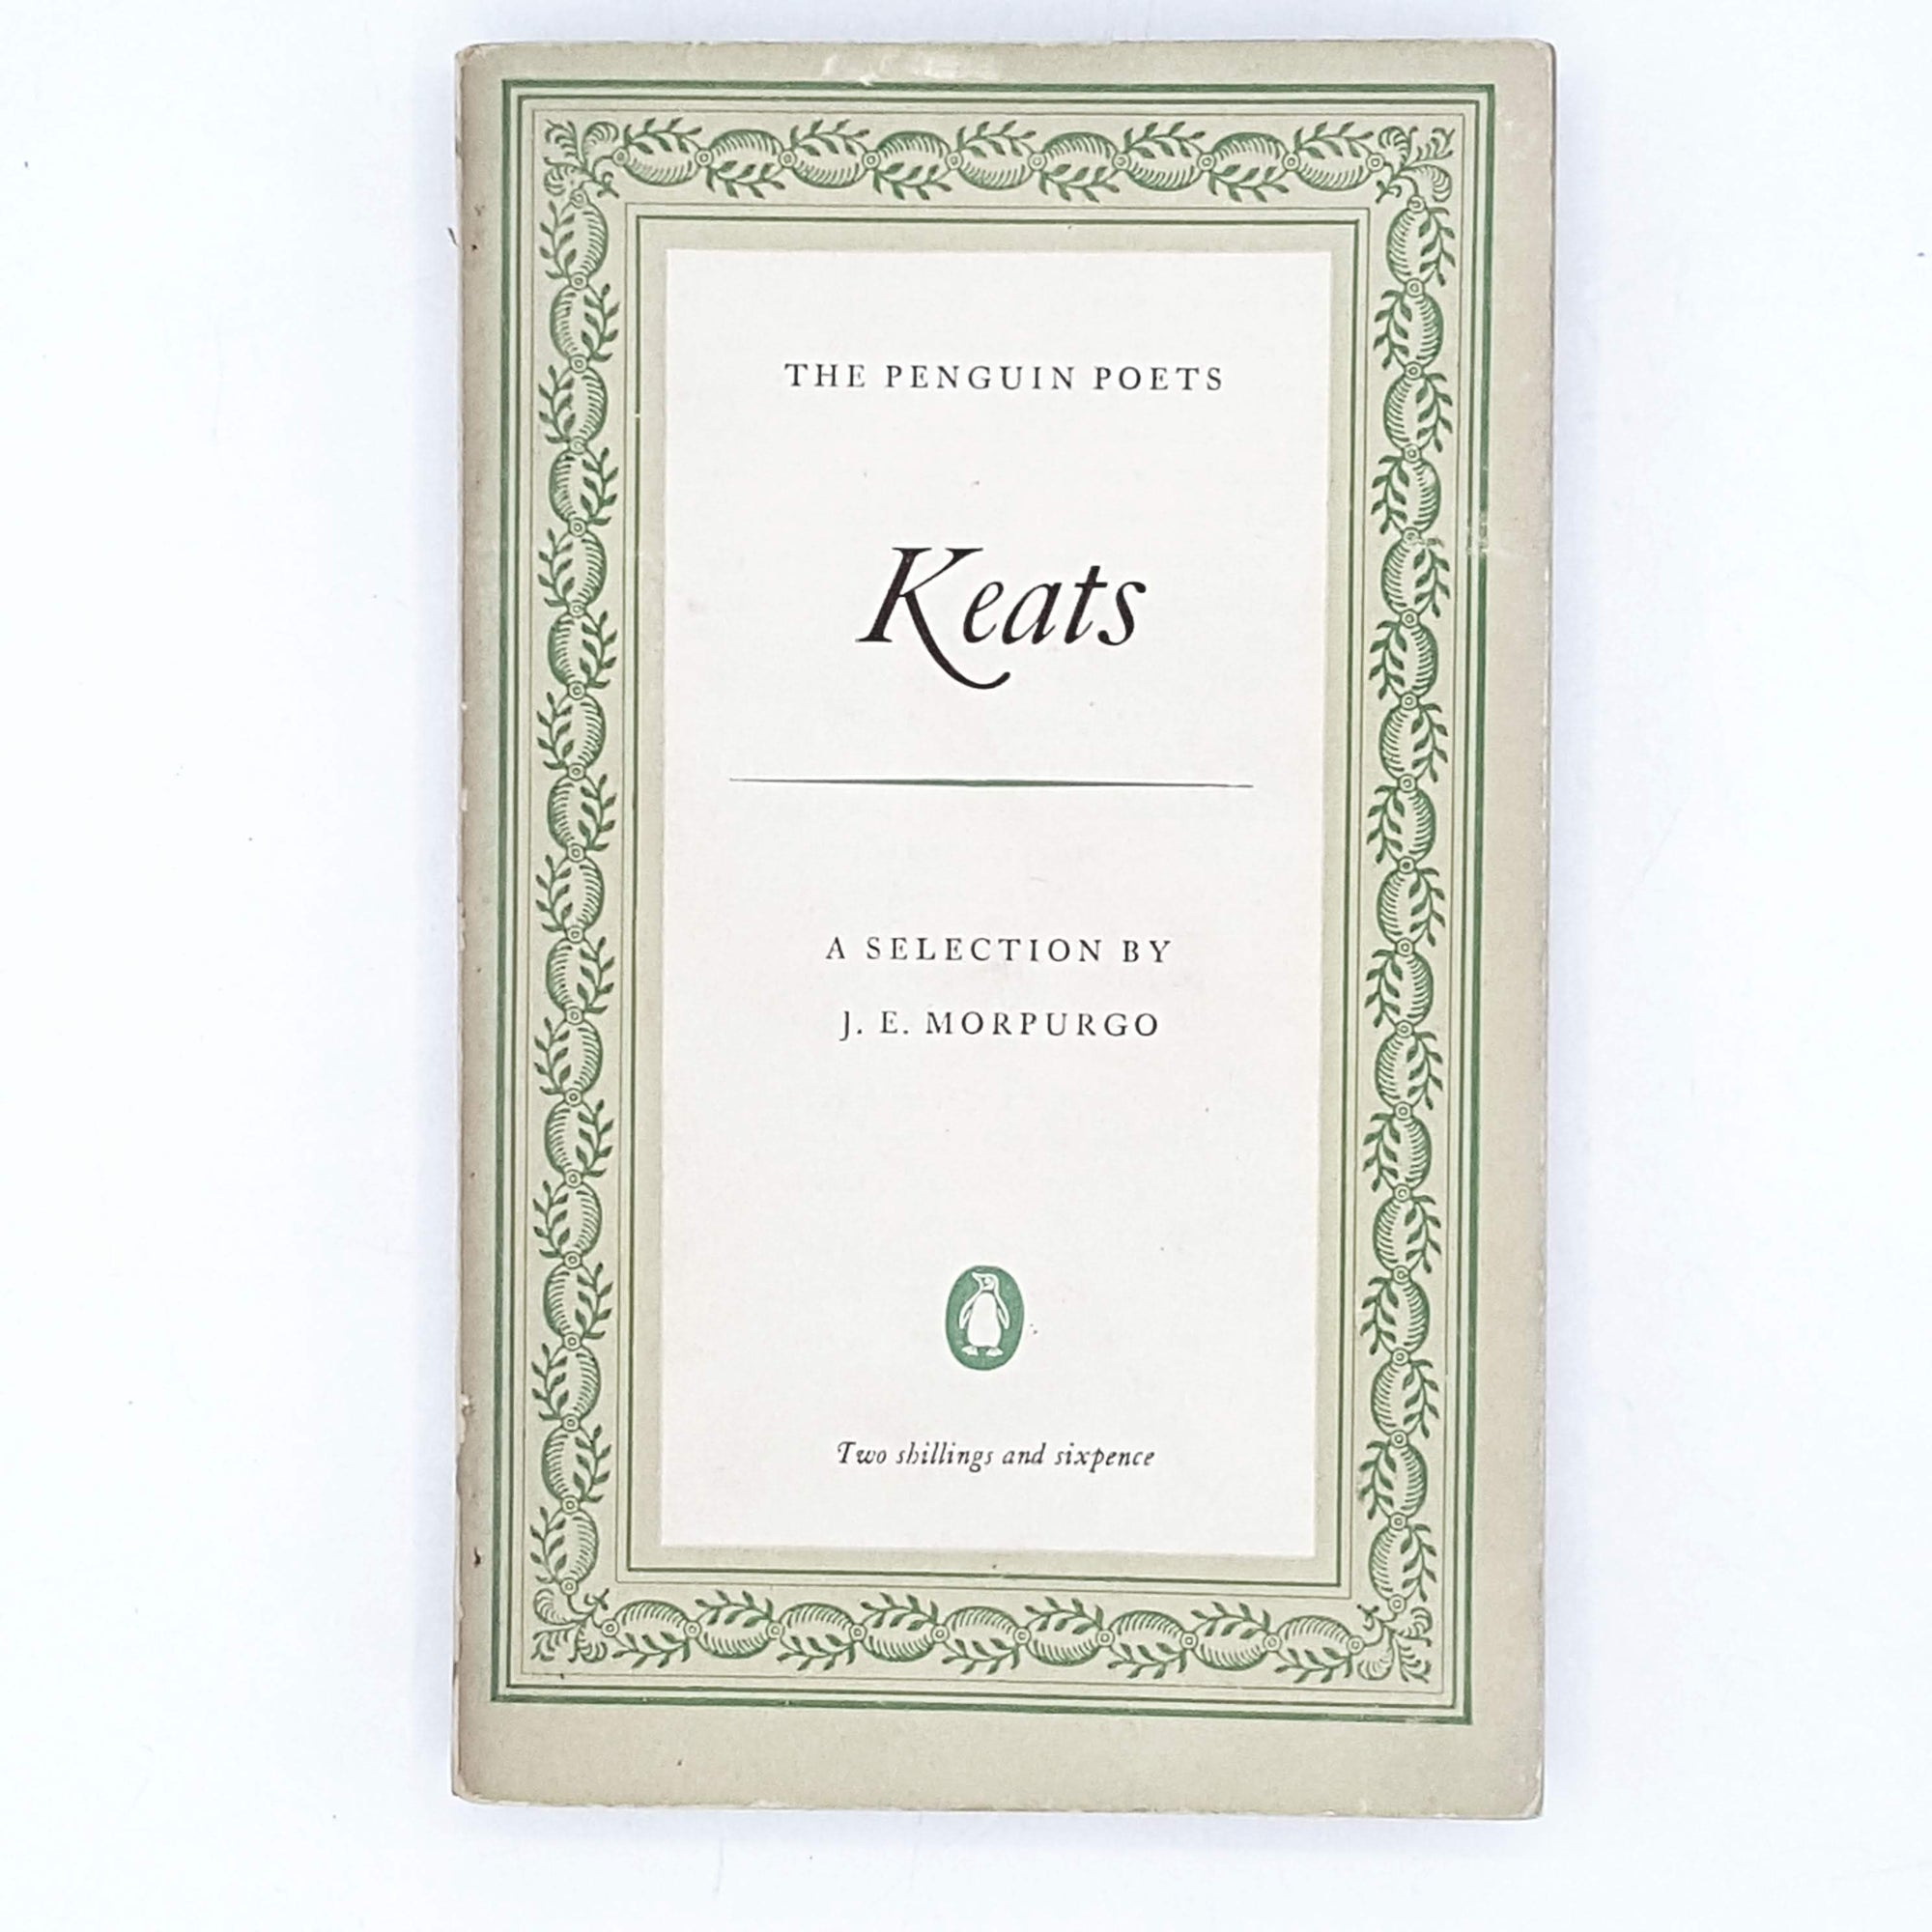 First Edition Penguin Poetry: Keats 1953